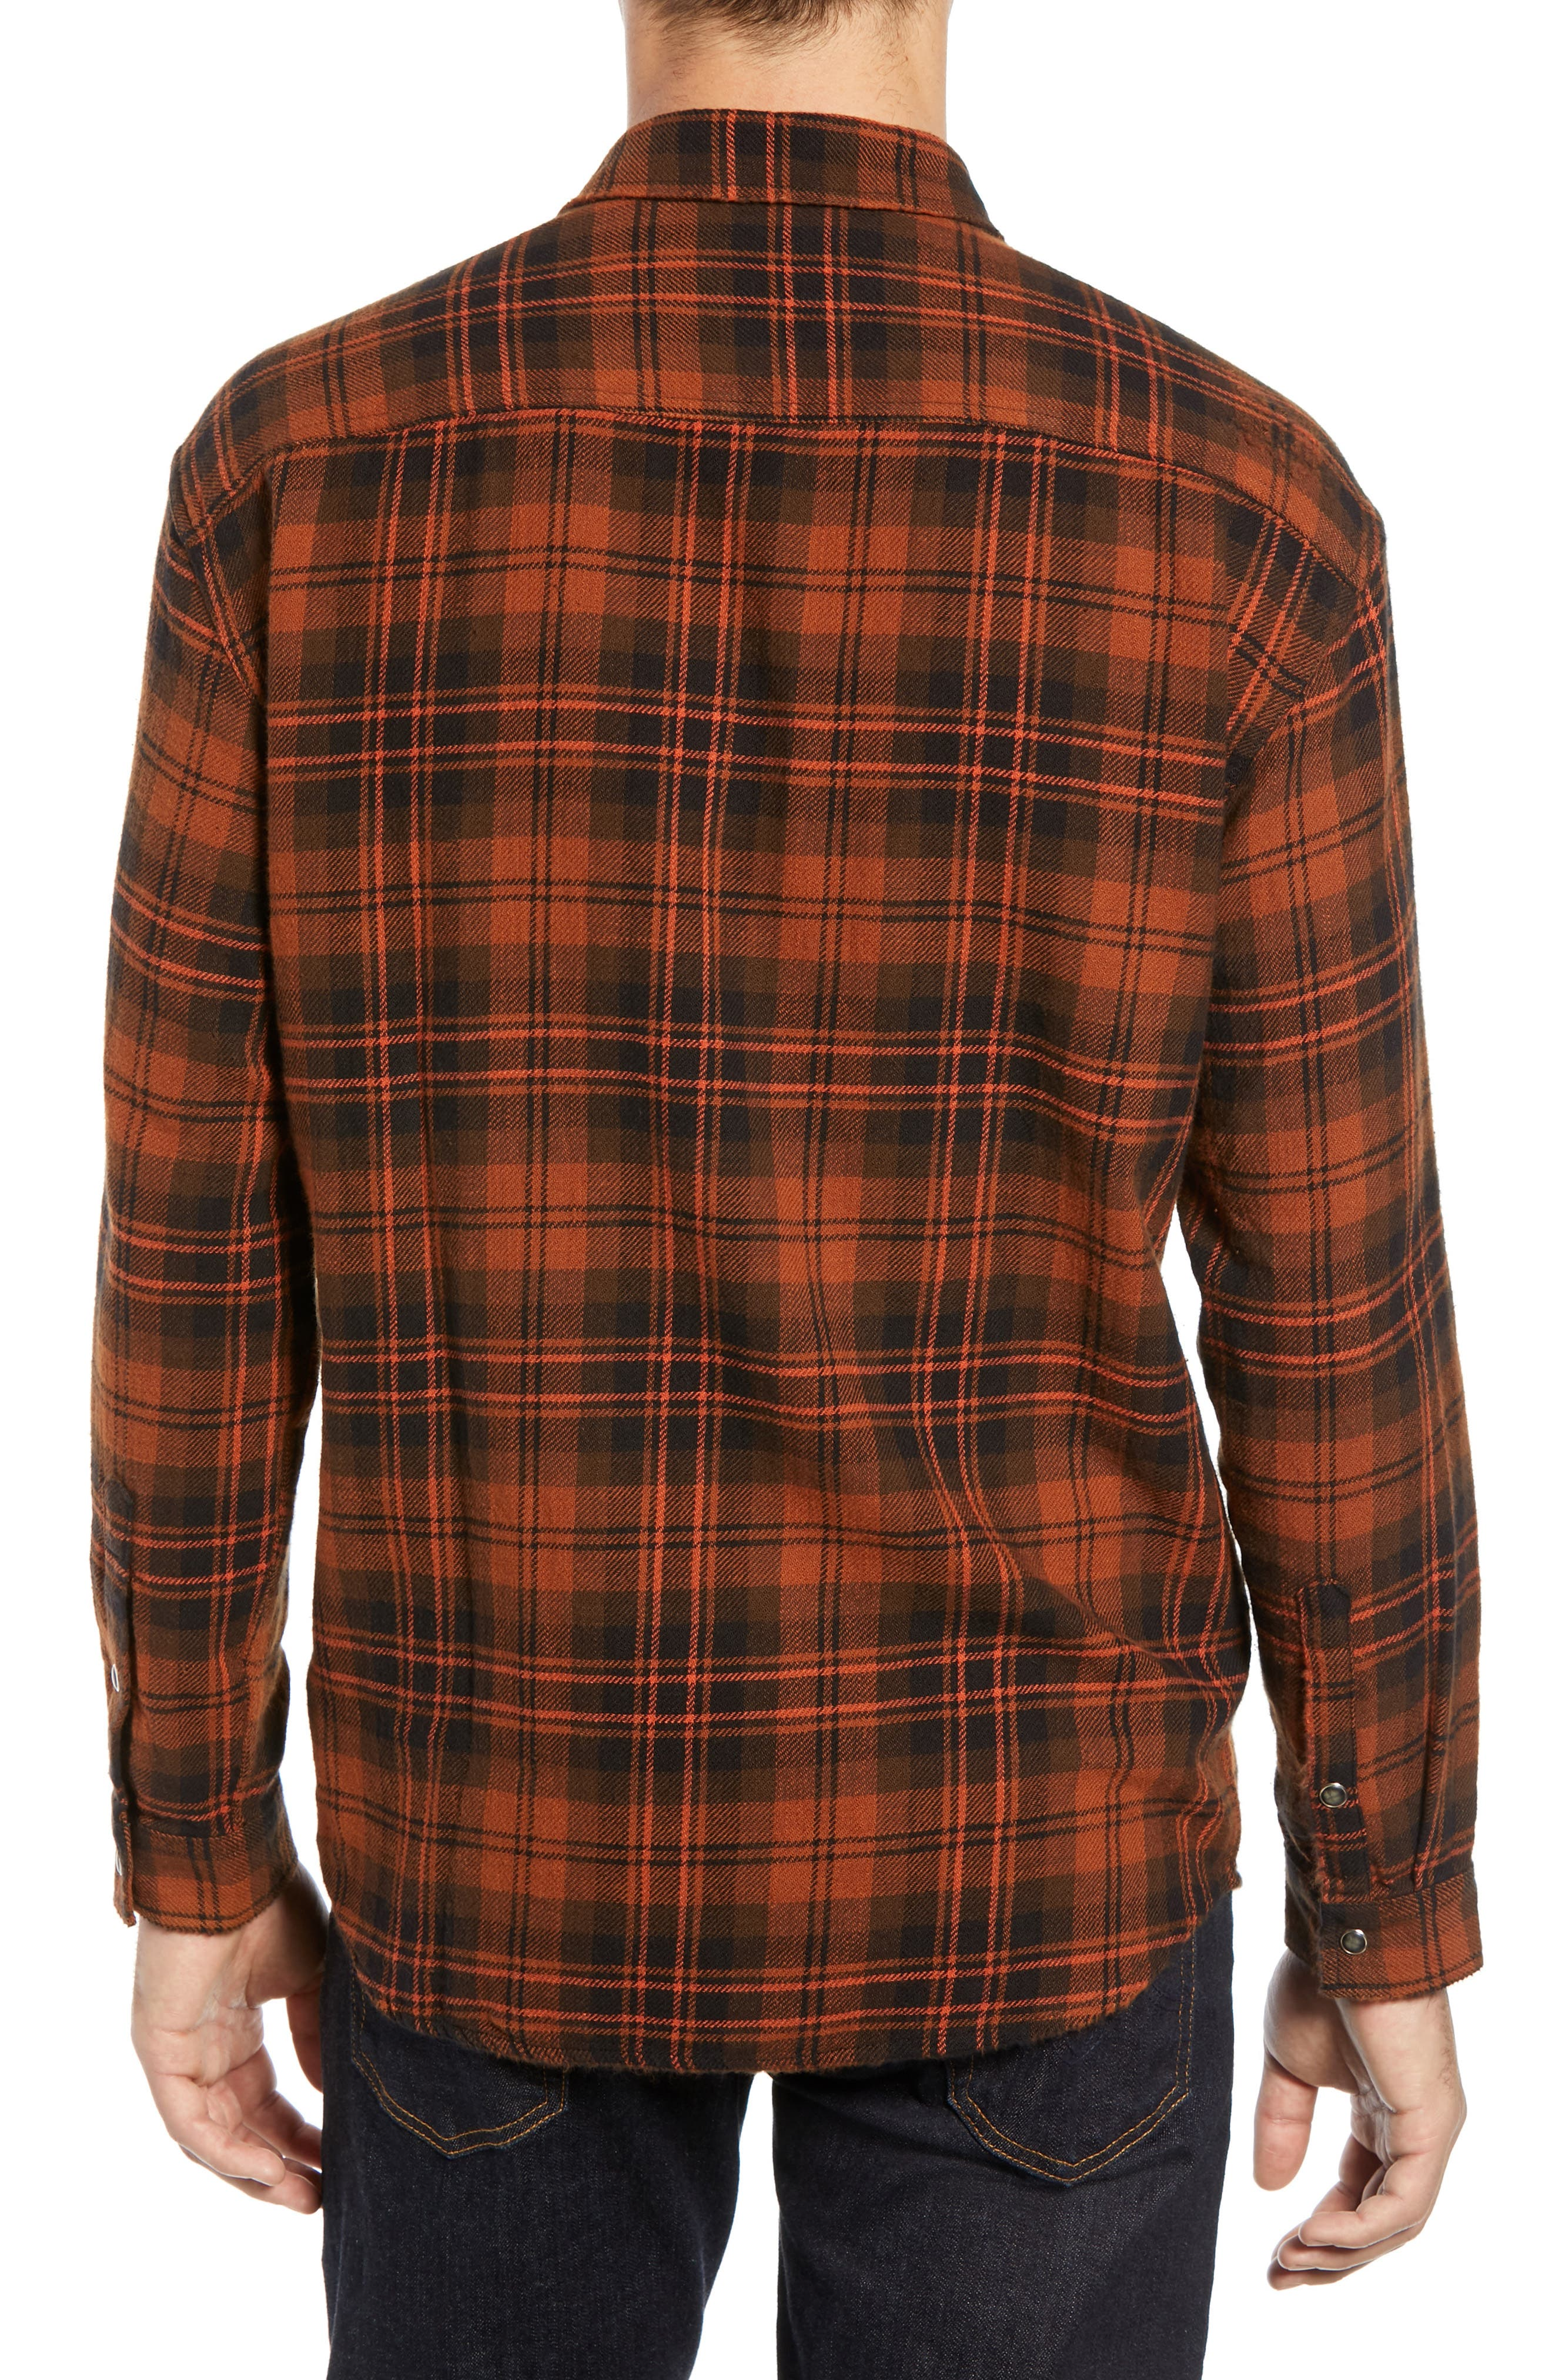 Destroyed Check Flannel Shirt,                             Alternate thumbnail 3, color,                             001